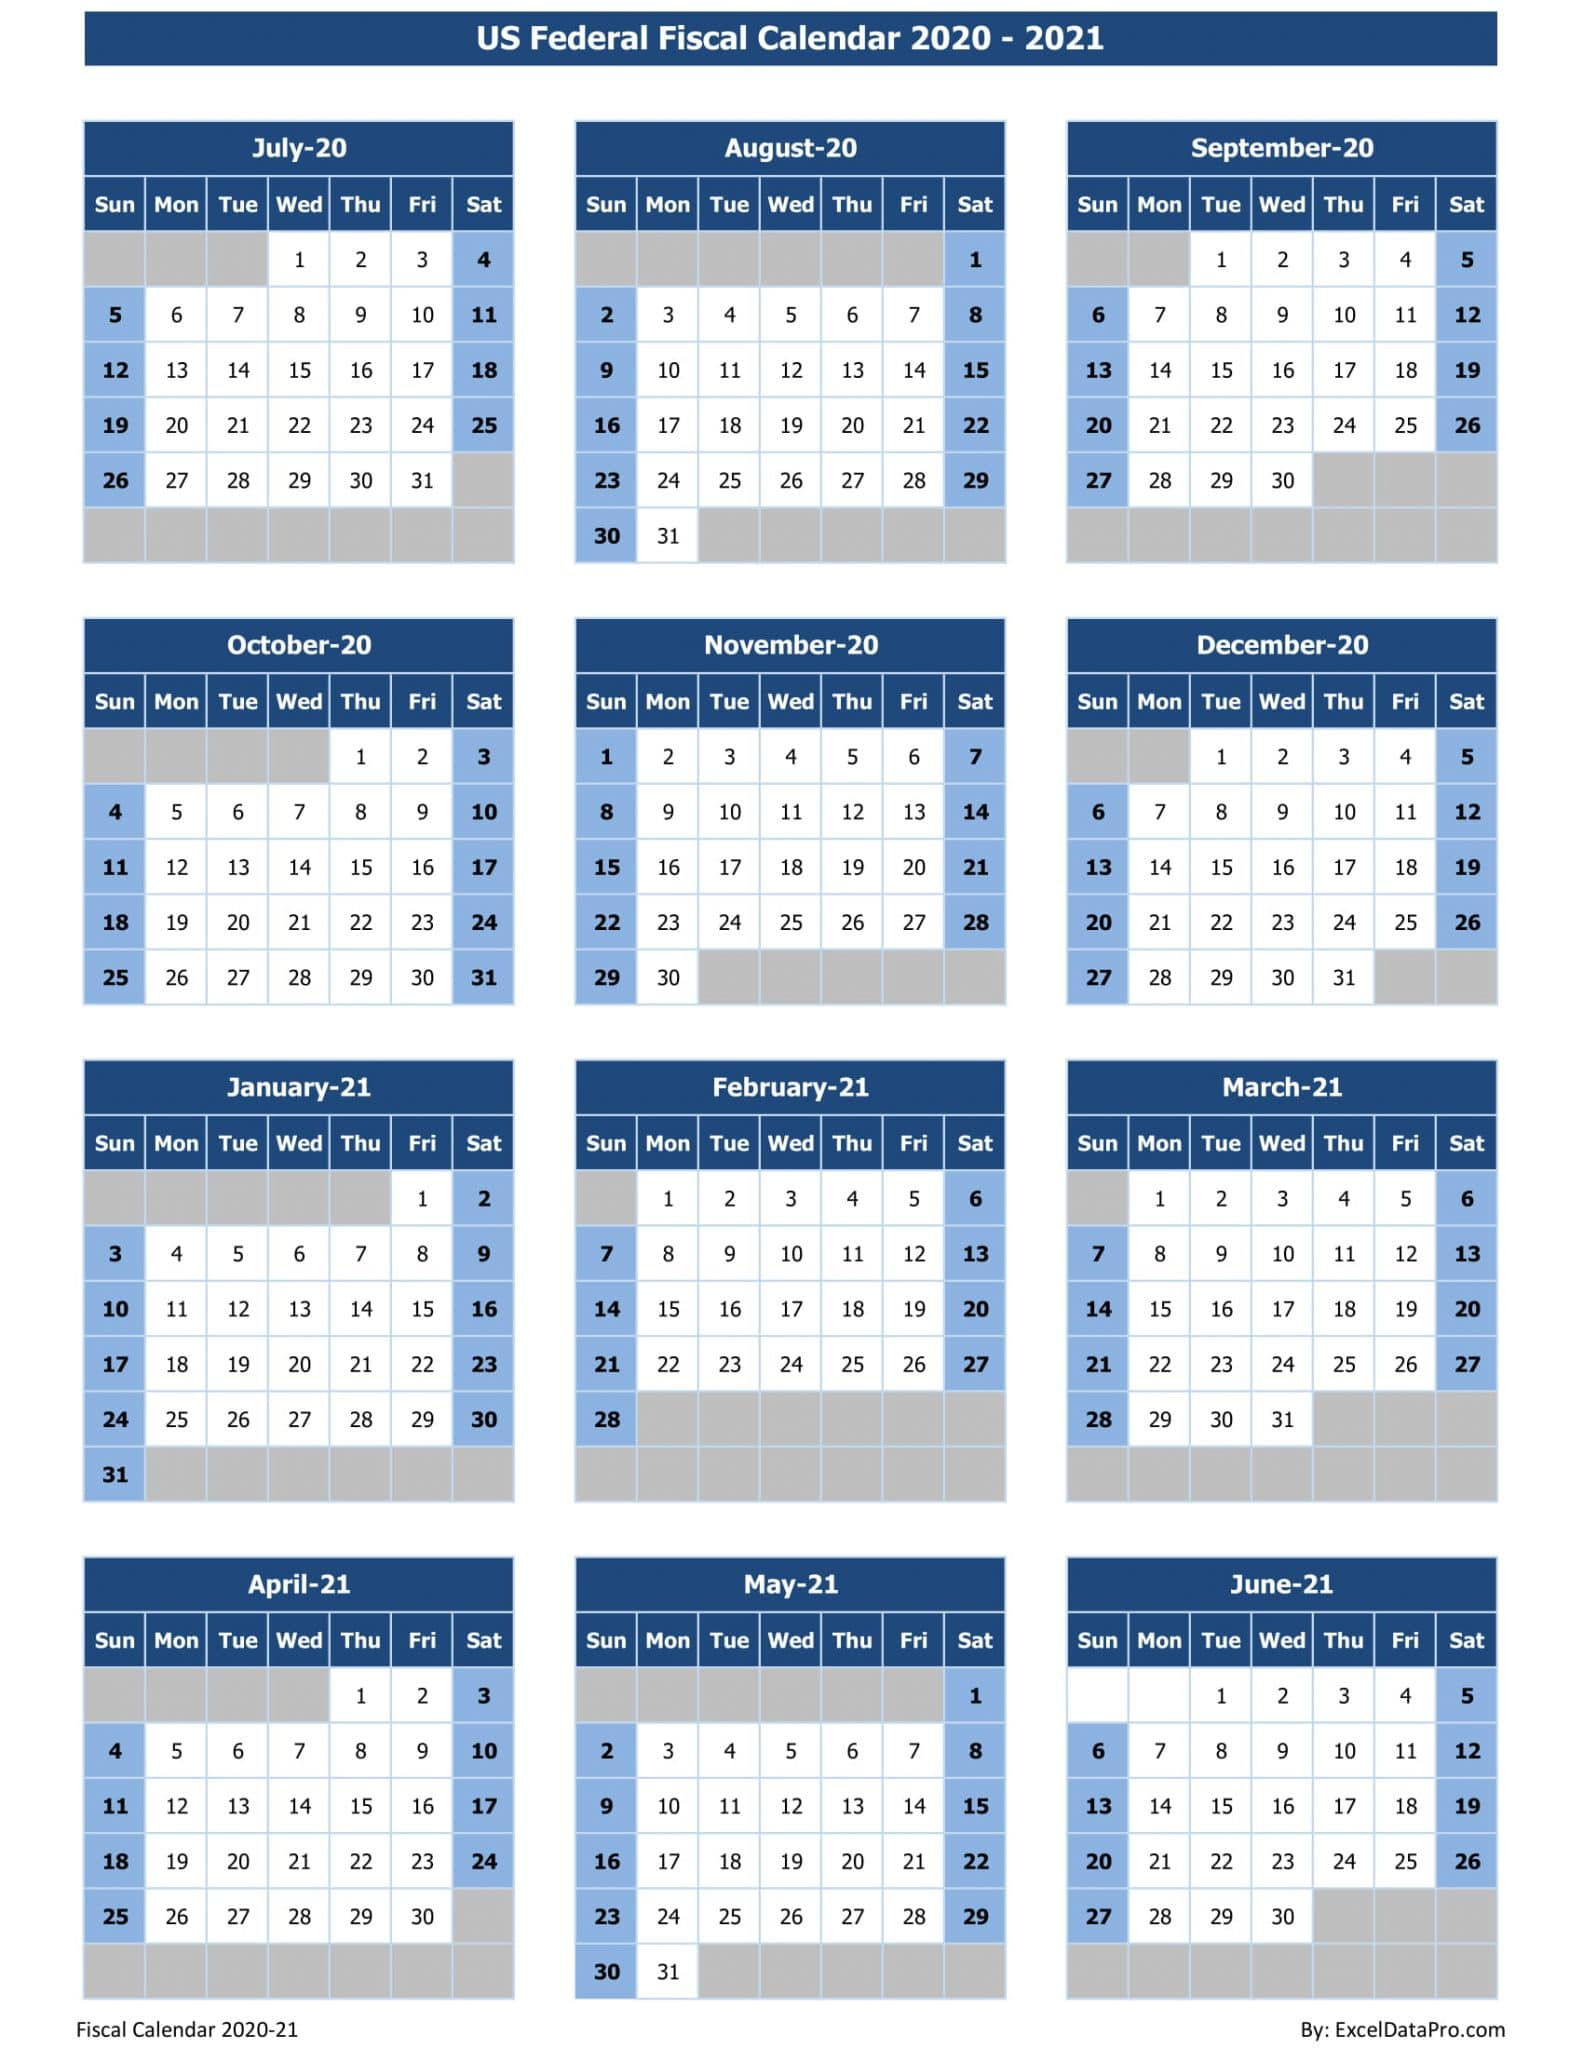 US Federal Fiscal Calendar 2020-21 - Colored